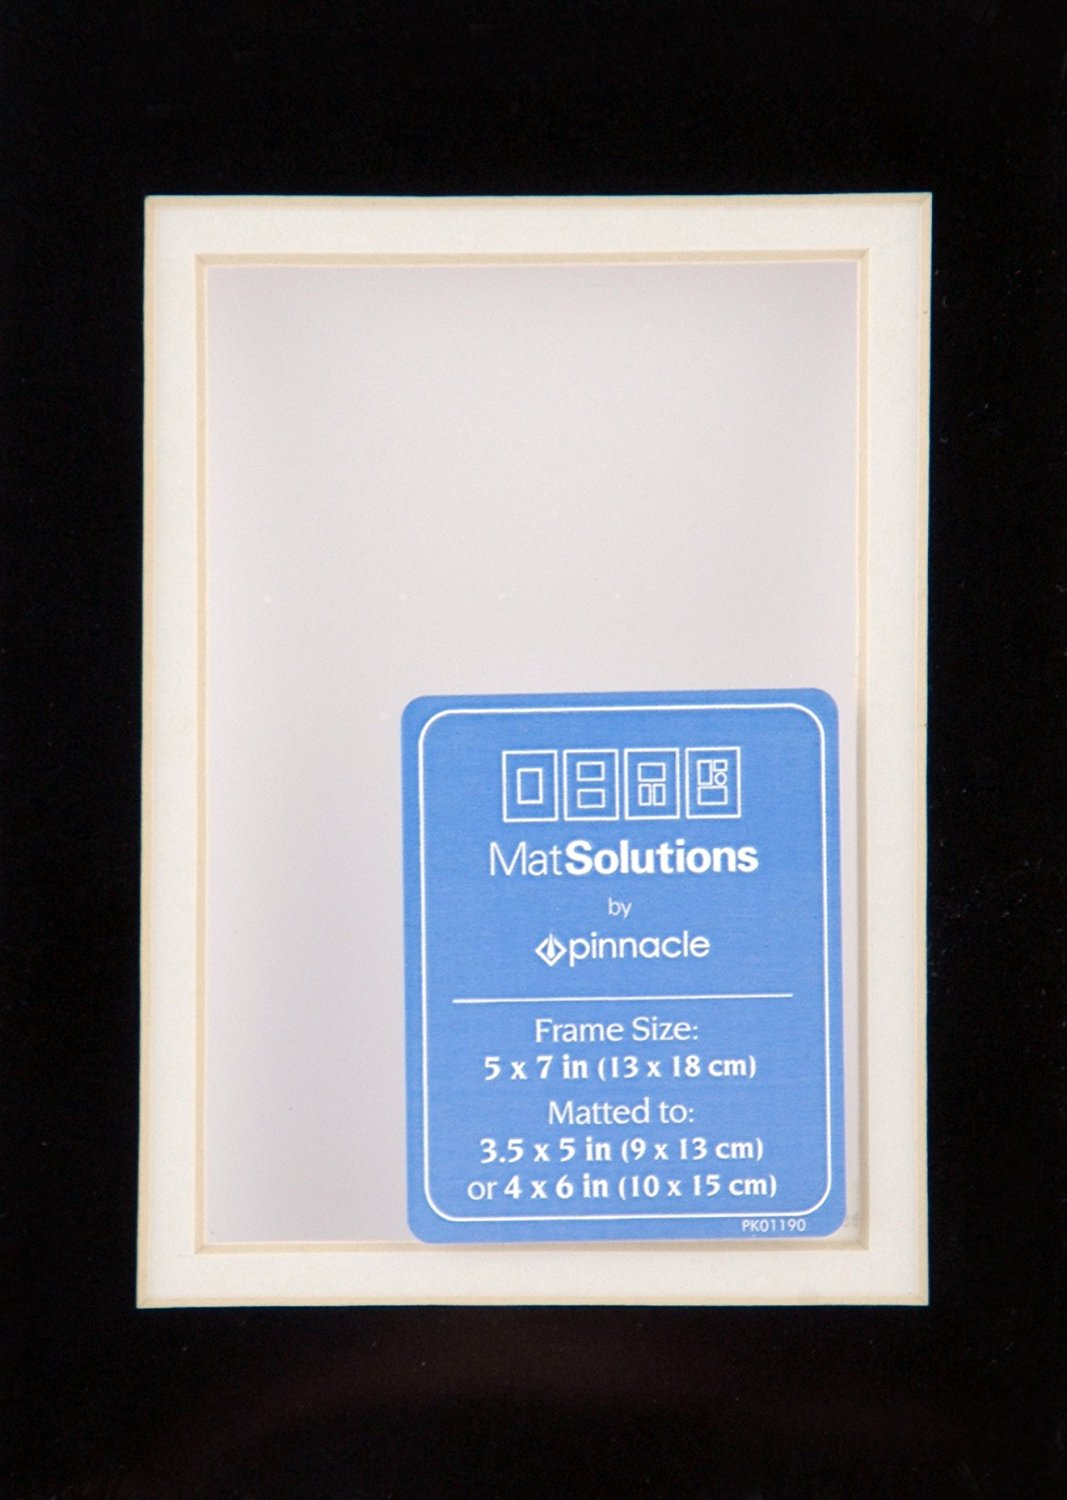 Gallery Solutions Black and White Custom Bevel Cut Double Mat for 5x7 Picture Frame with 3.5x5 Opening